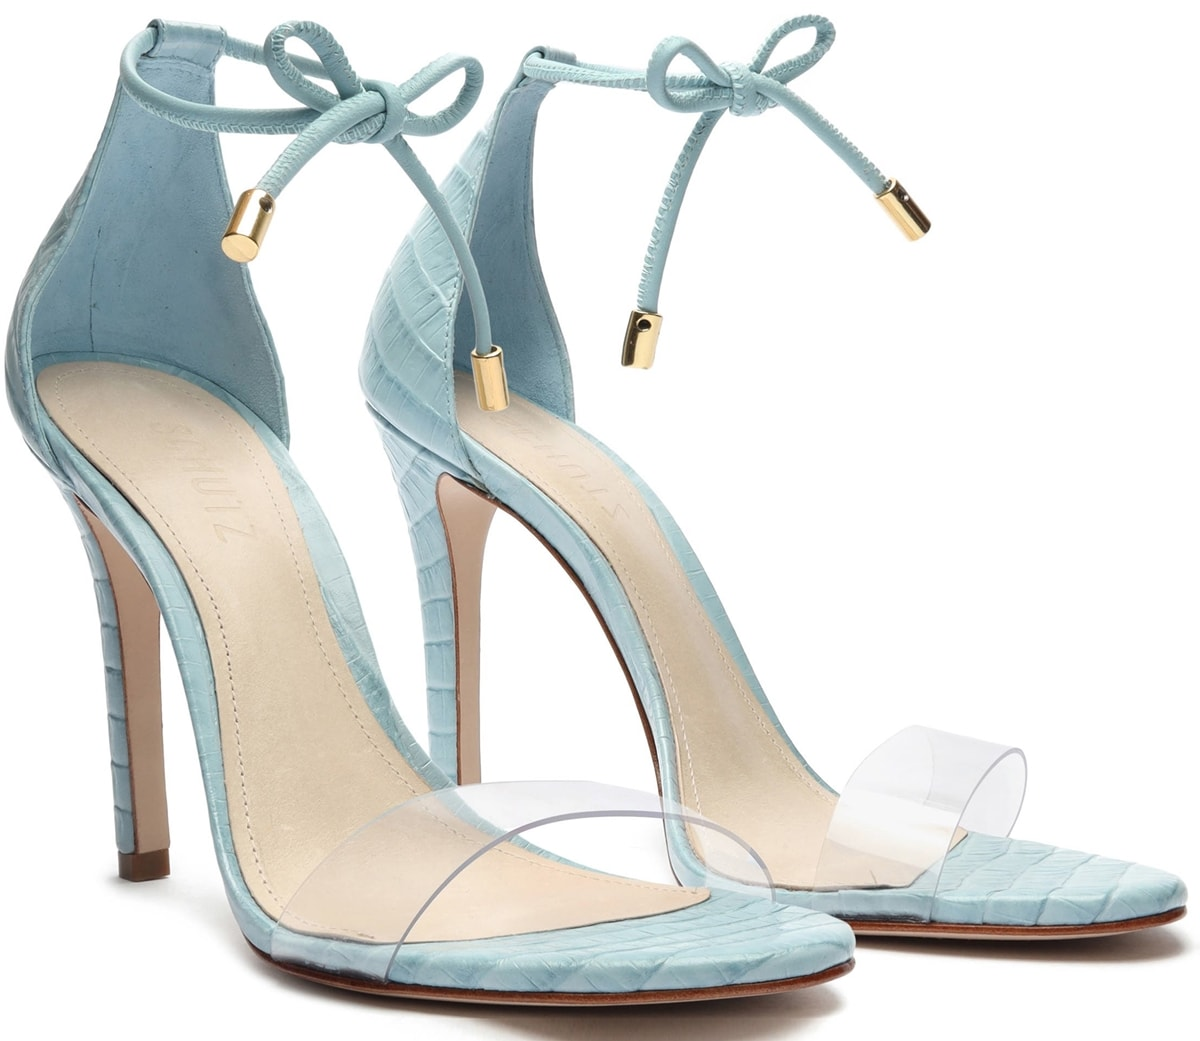 Blue high heel lace-up strappy sandal with clear toe strap and long ankle tying laces